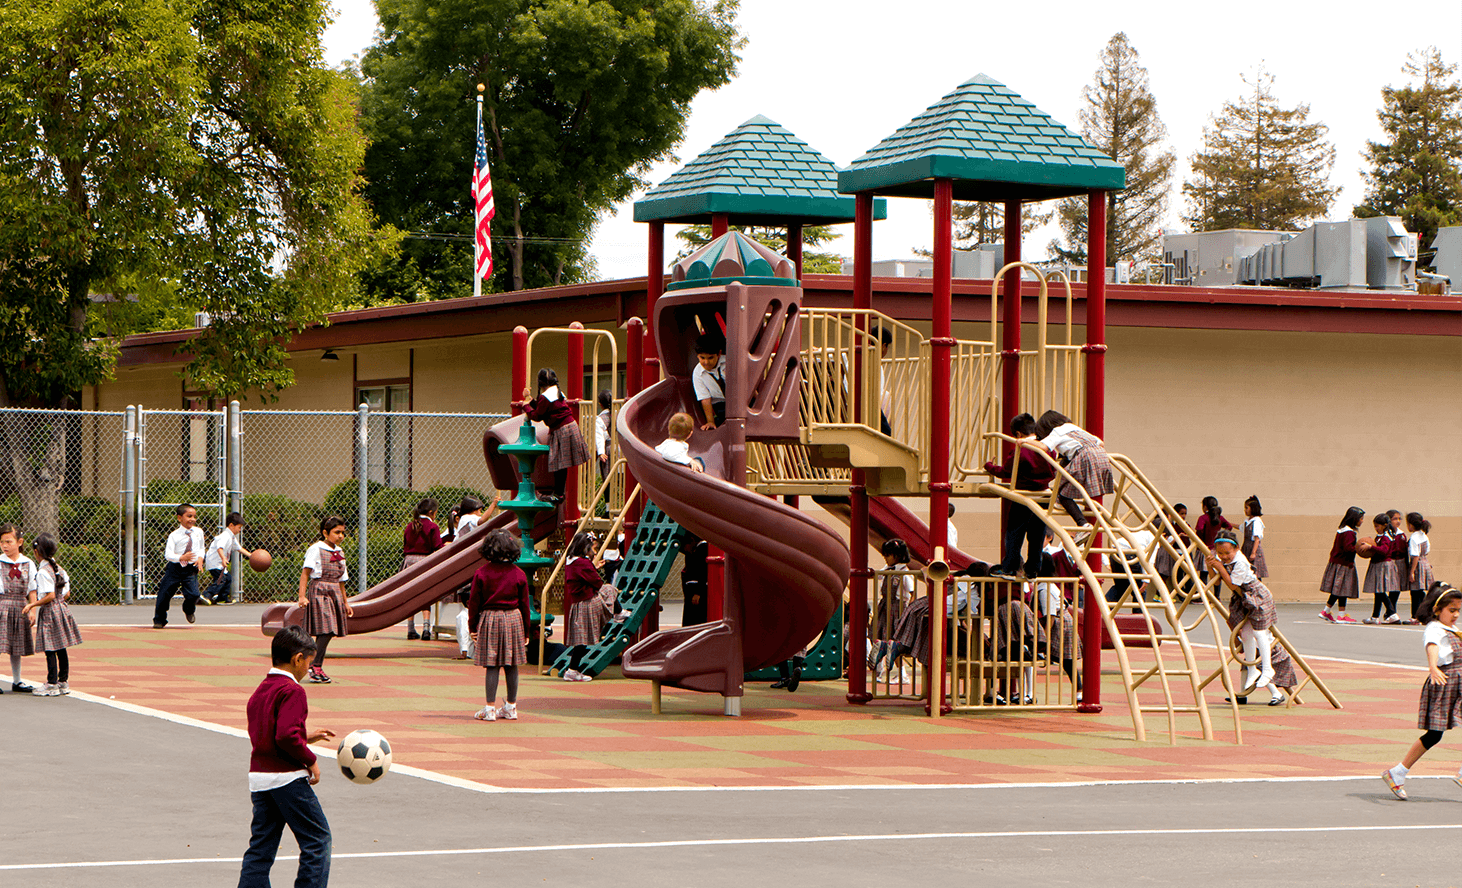 Playground Fun | Challenger School - Sunnyvale | Private School In Sunnyvale, California